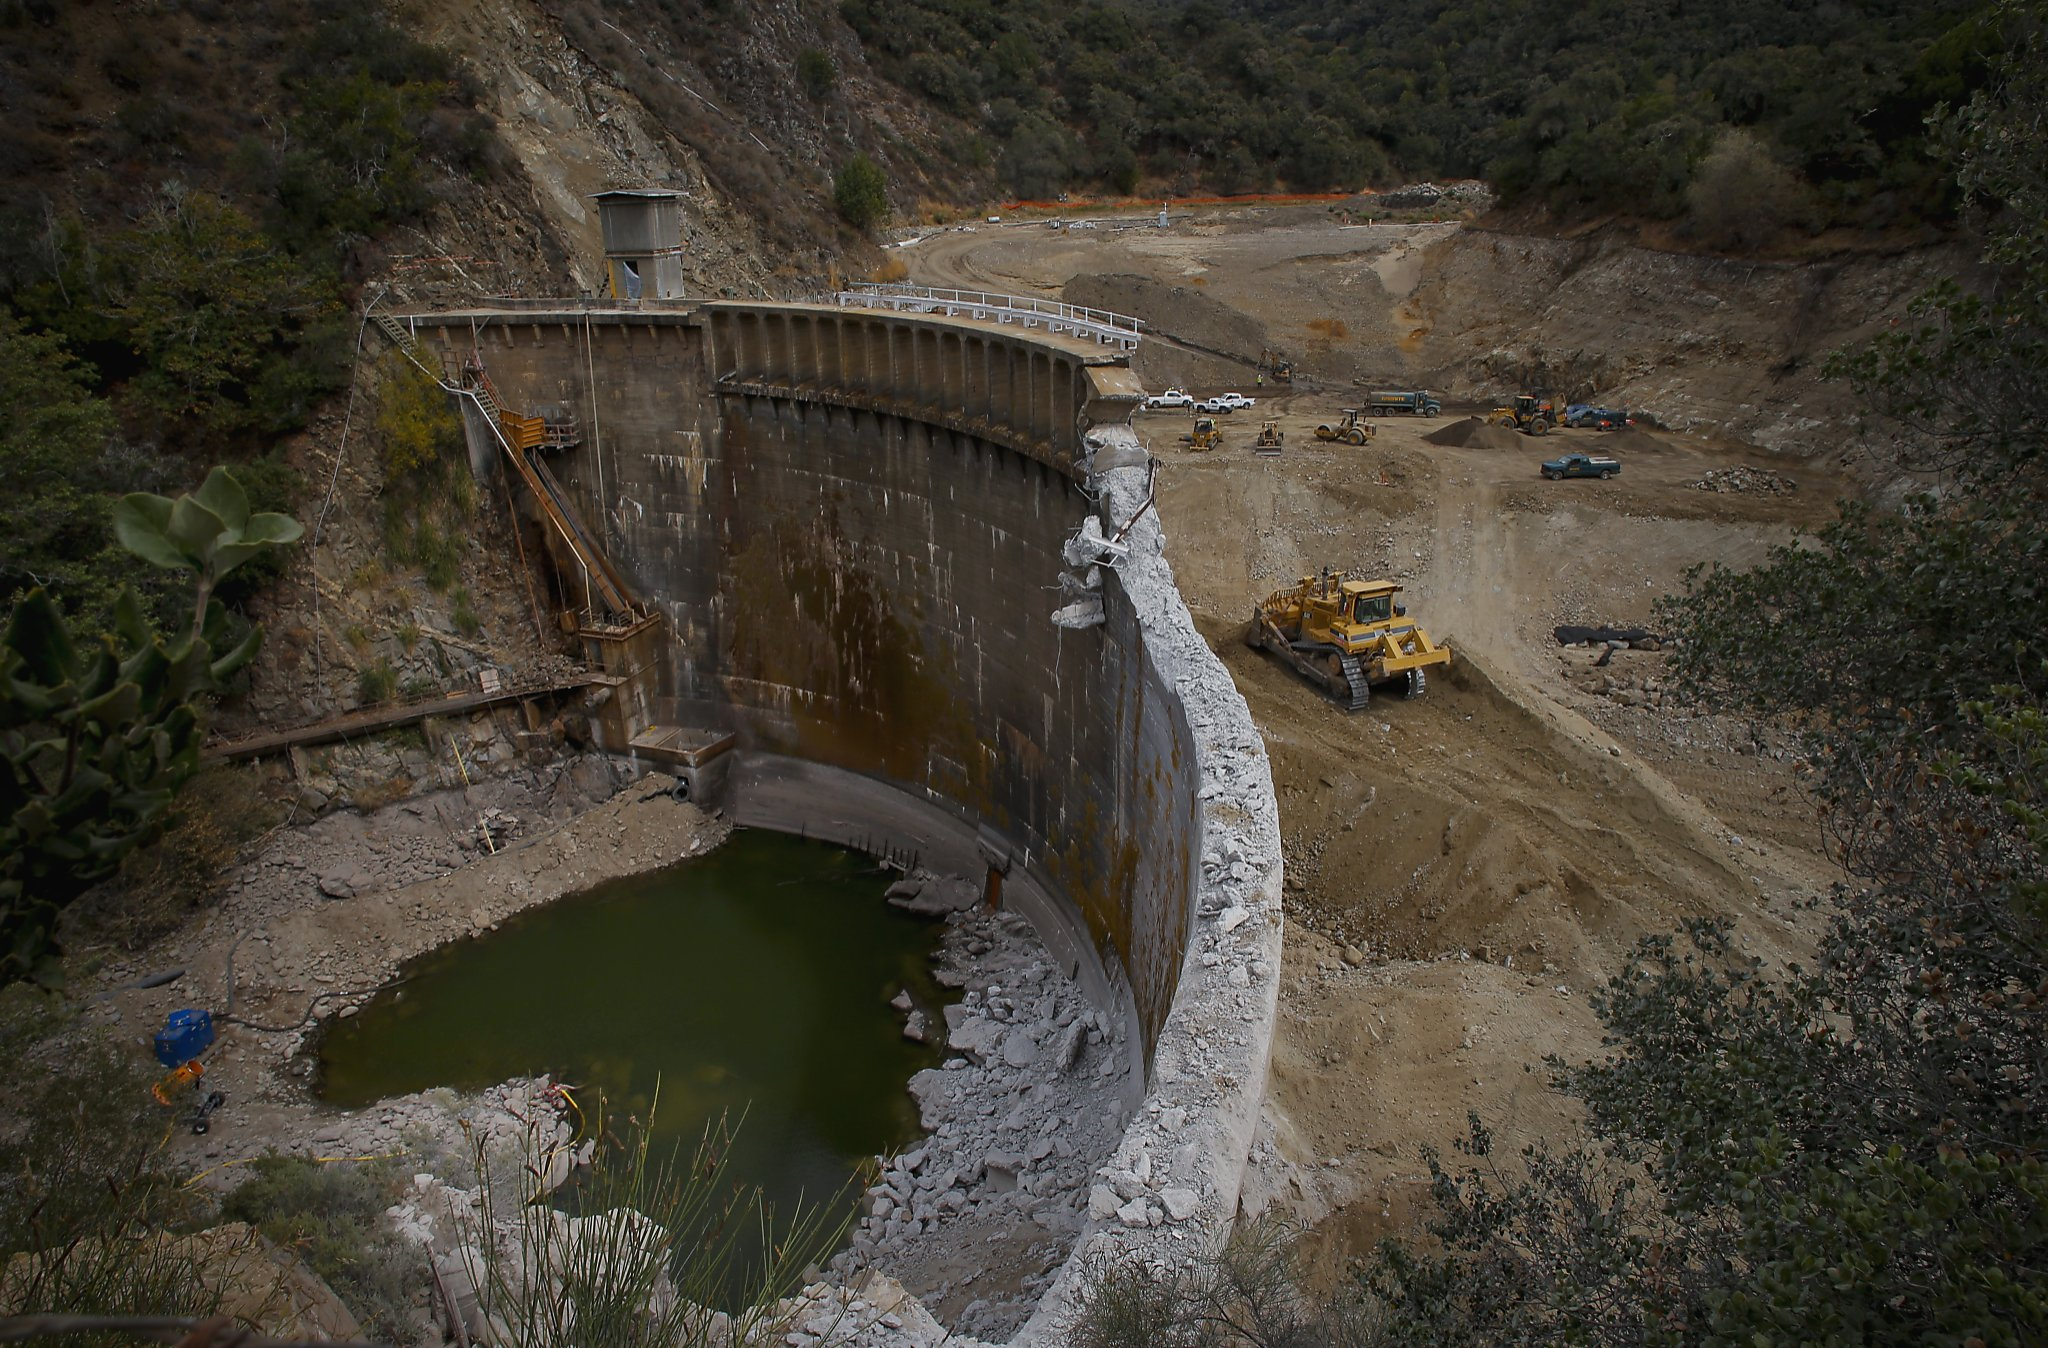 How A Dam U2019s Destruction Is Changing Environmental Landscape